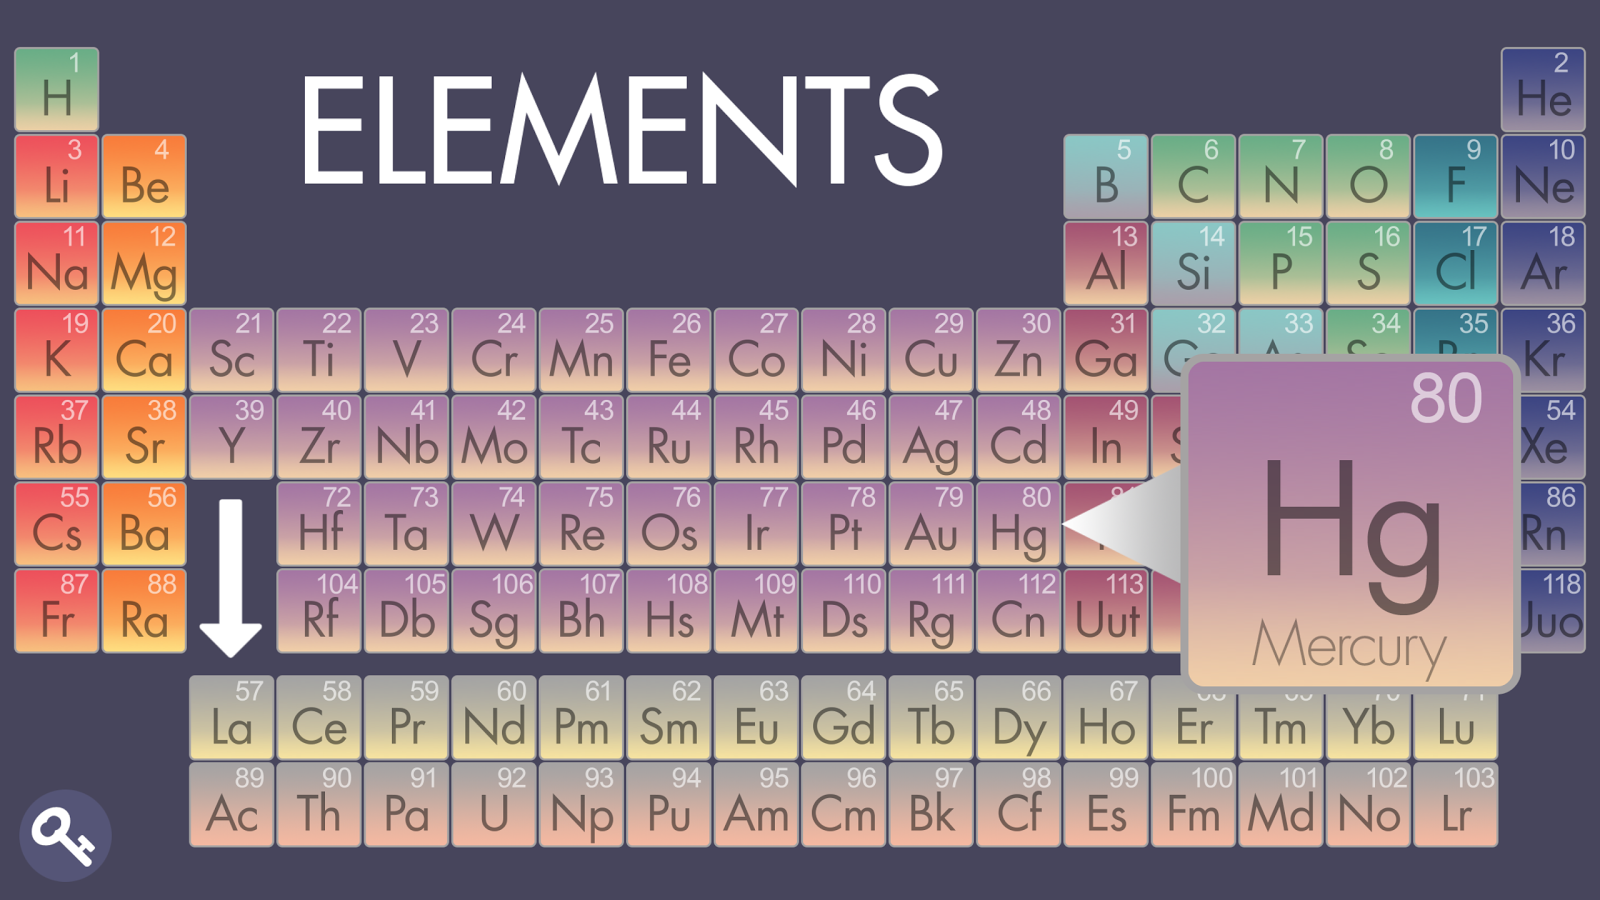 Elements periodic table 11 apk download android education apps elements periodic table 11 screenshot 1 elements periodic table 11 screenshot 2 urtaz Image collections